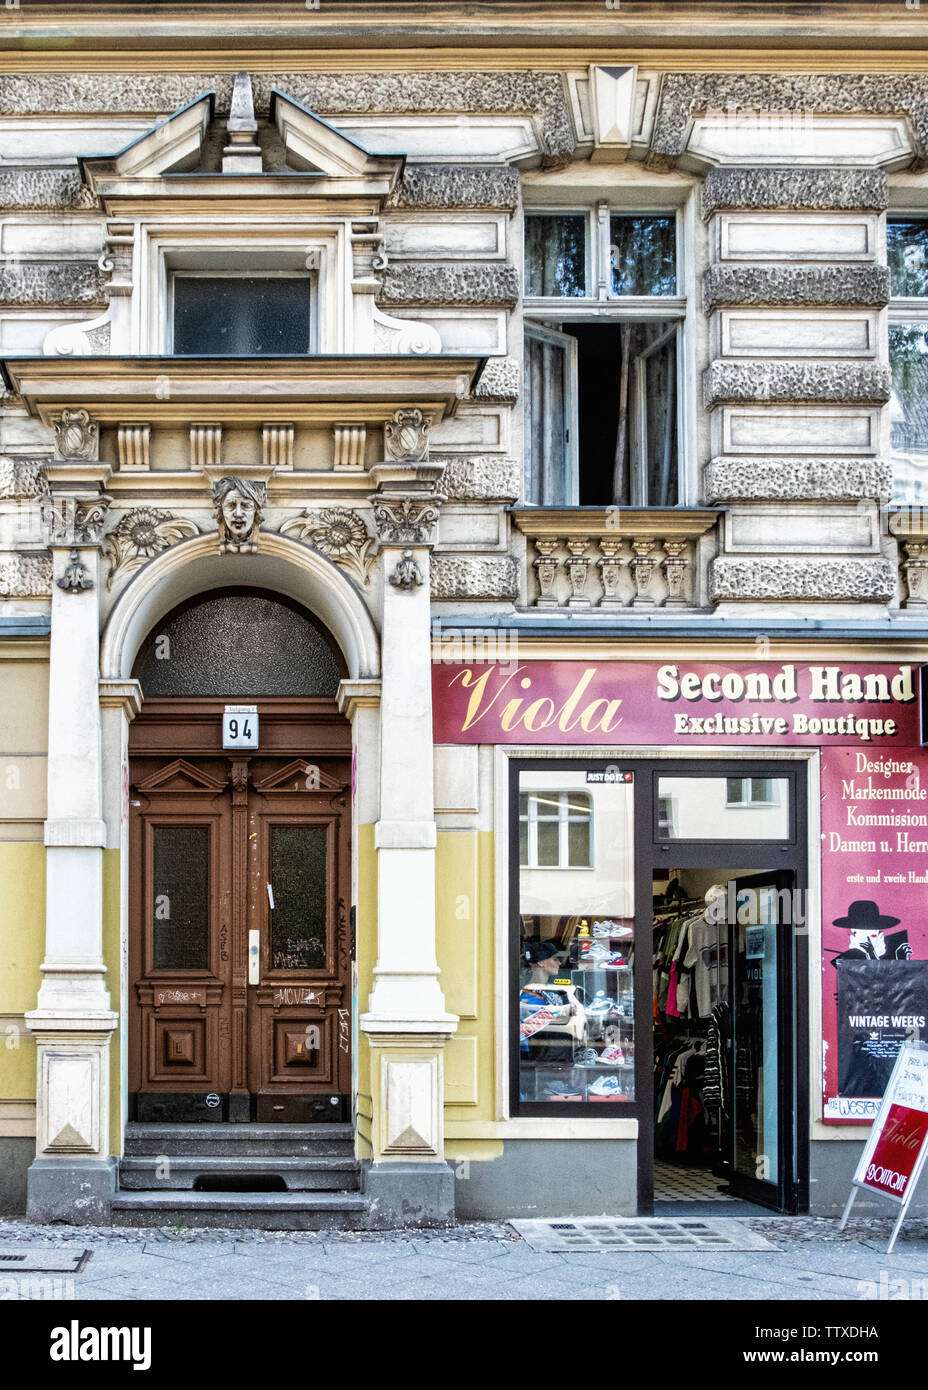 Viola Second hand Boutique sells vintage clothing & fashion for men & women in historic old building in Charlottenburg, Berlin - Stock Image